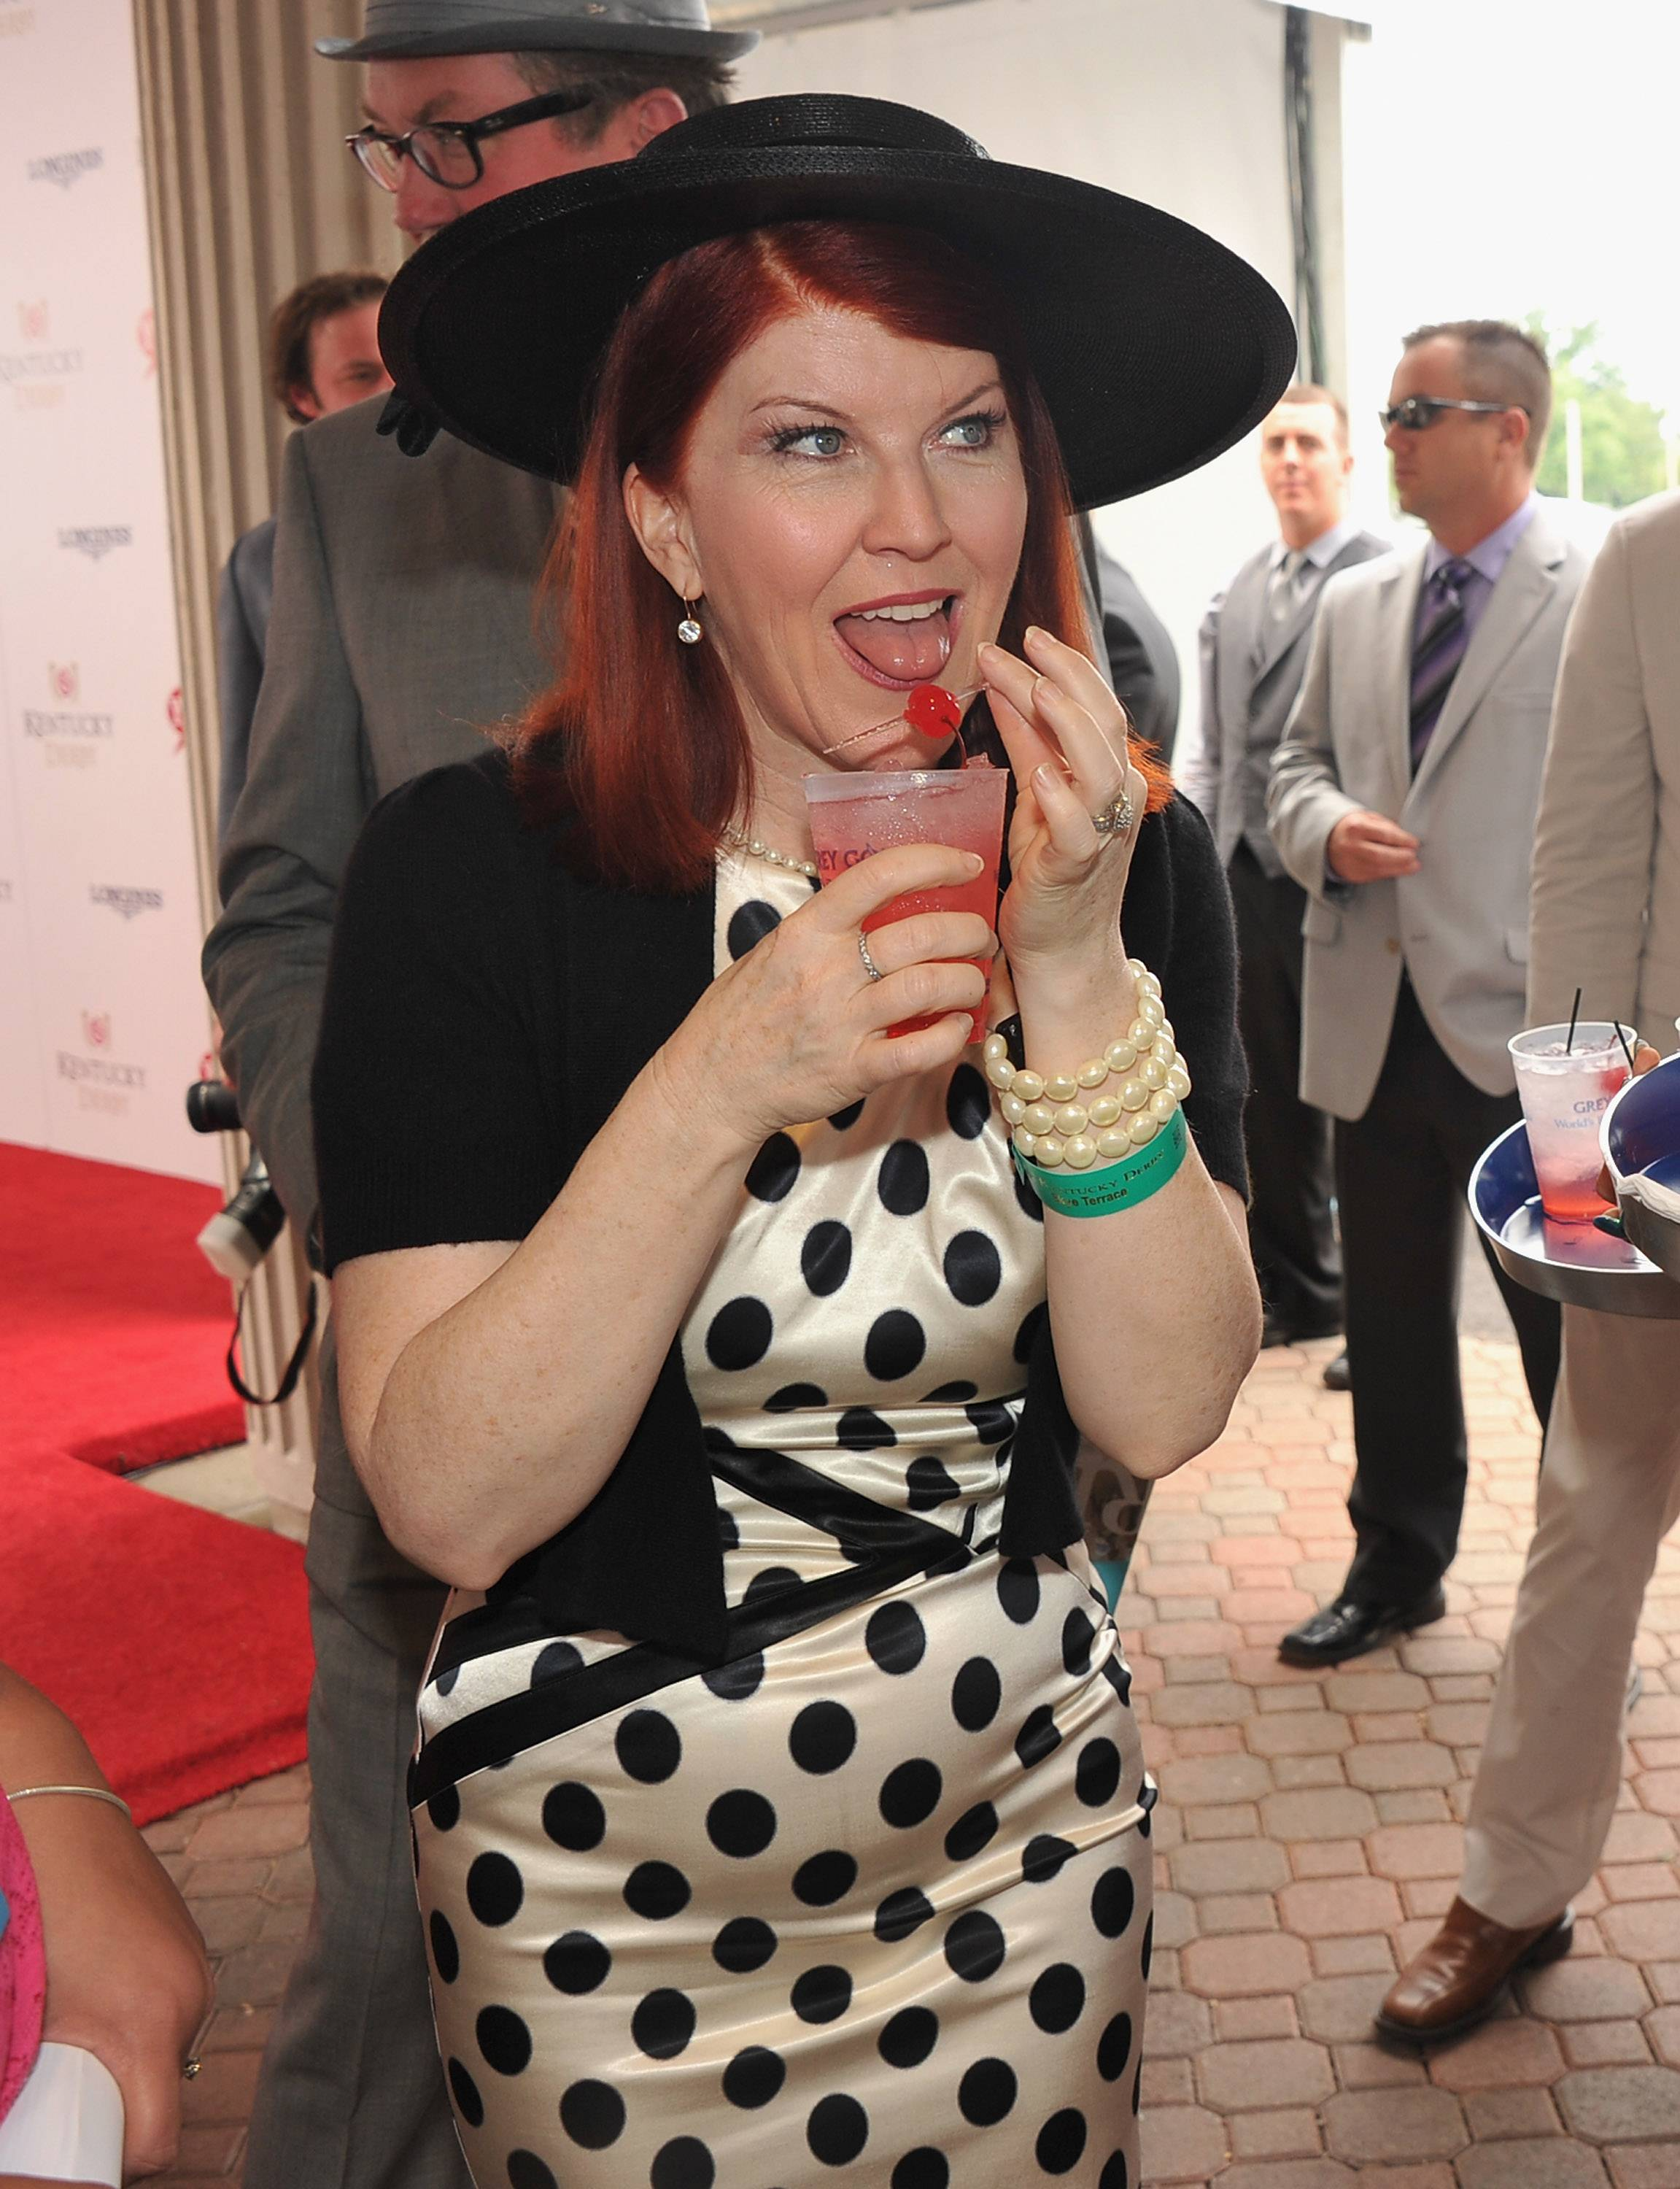 Kate Flannery  at the GREY GOOSE Vodka Lounge at the 138th Running of the Kentucky Derby.